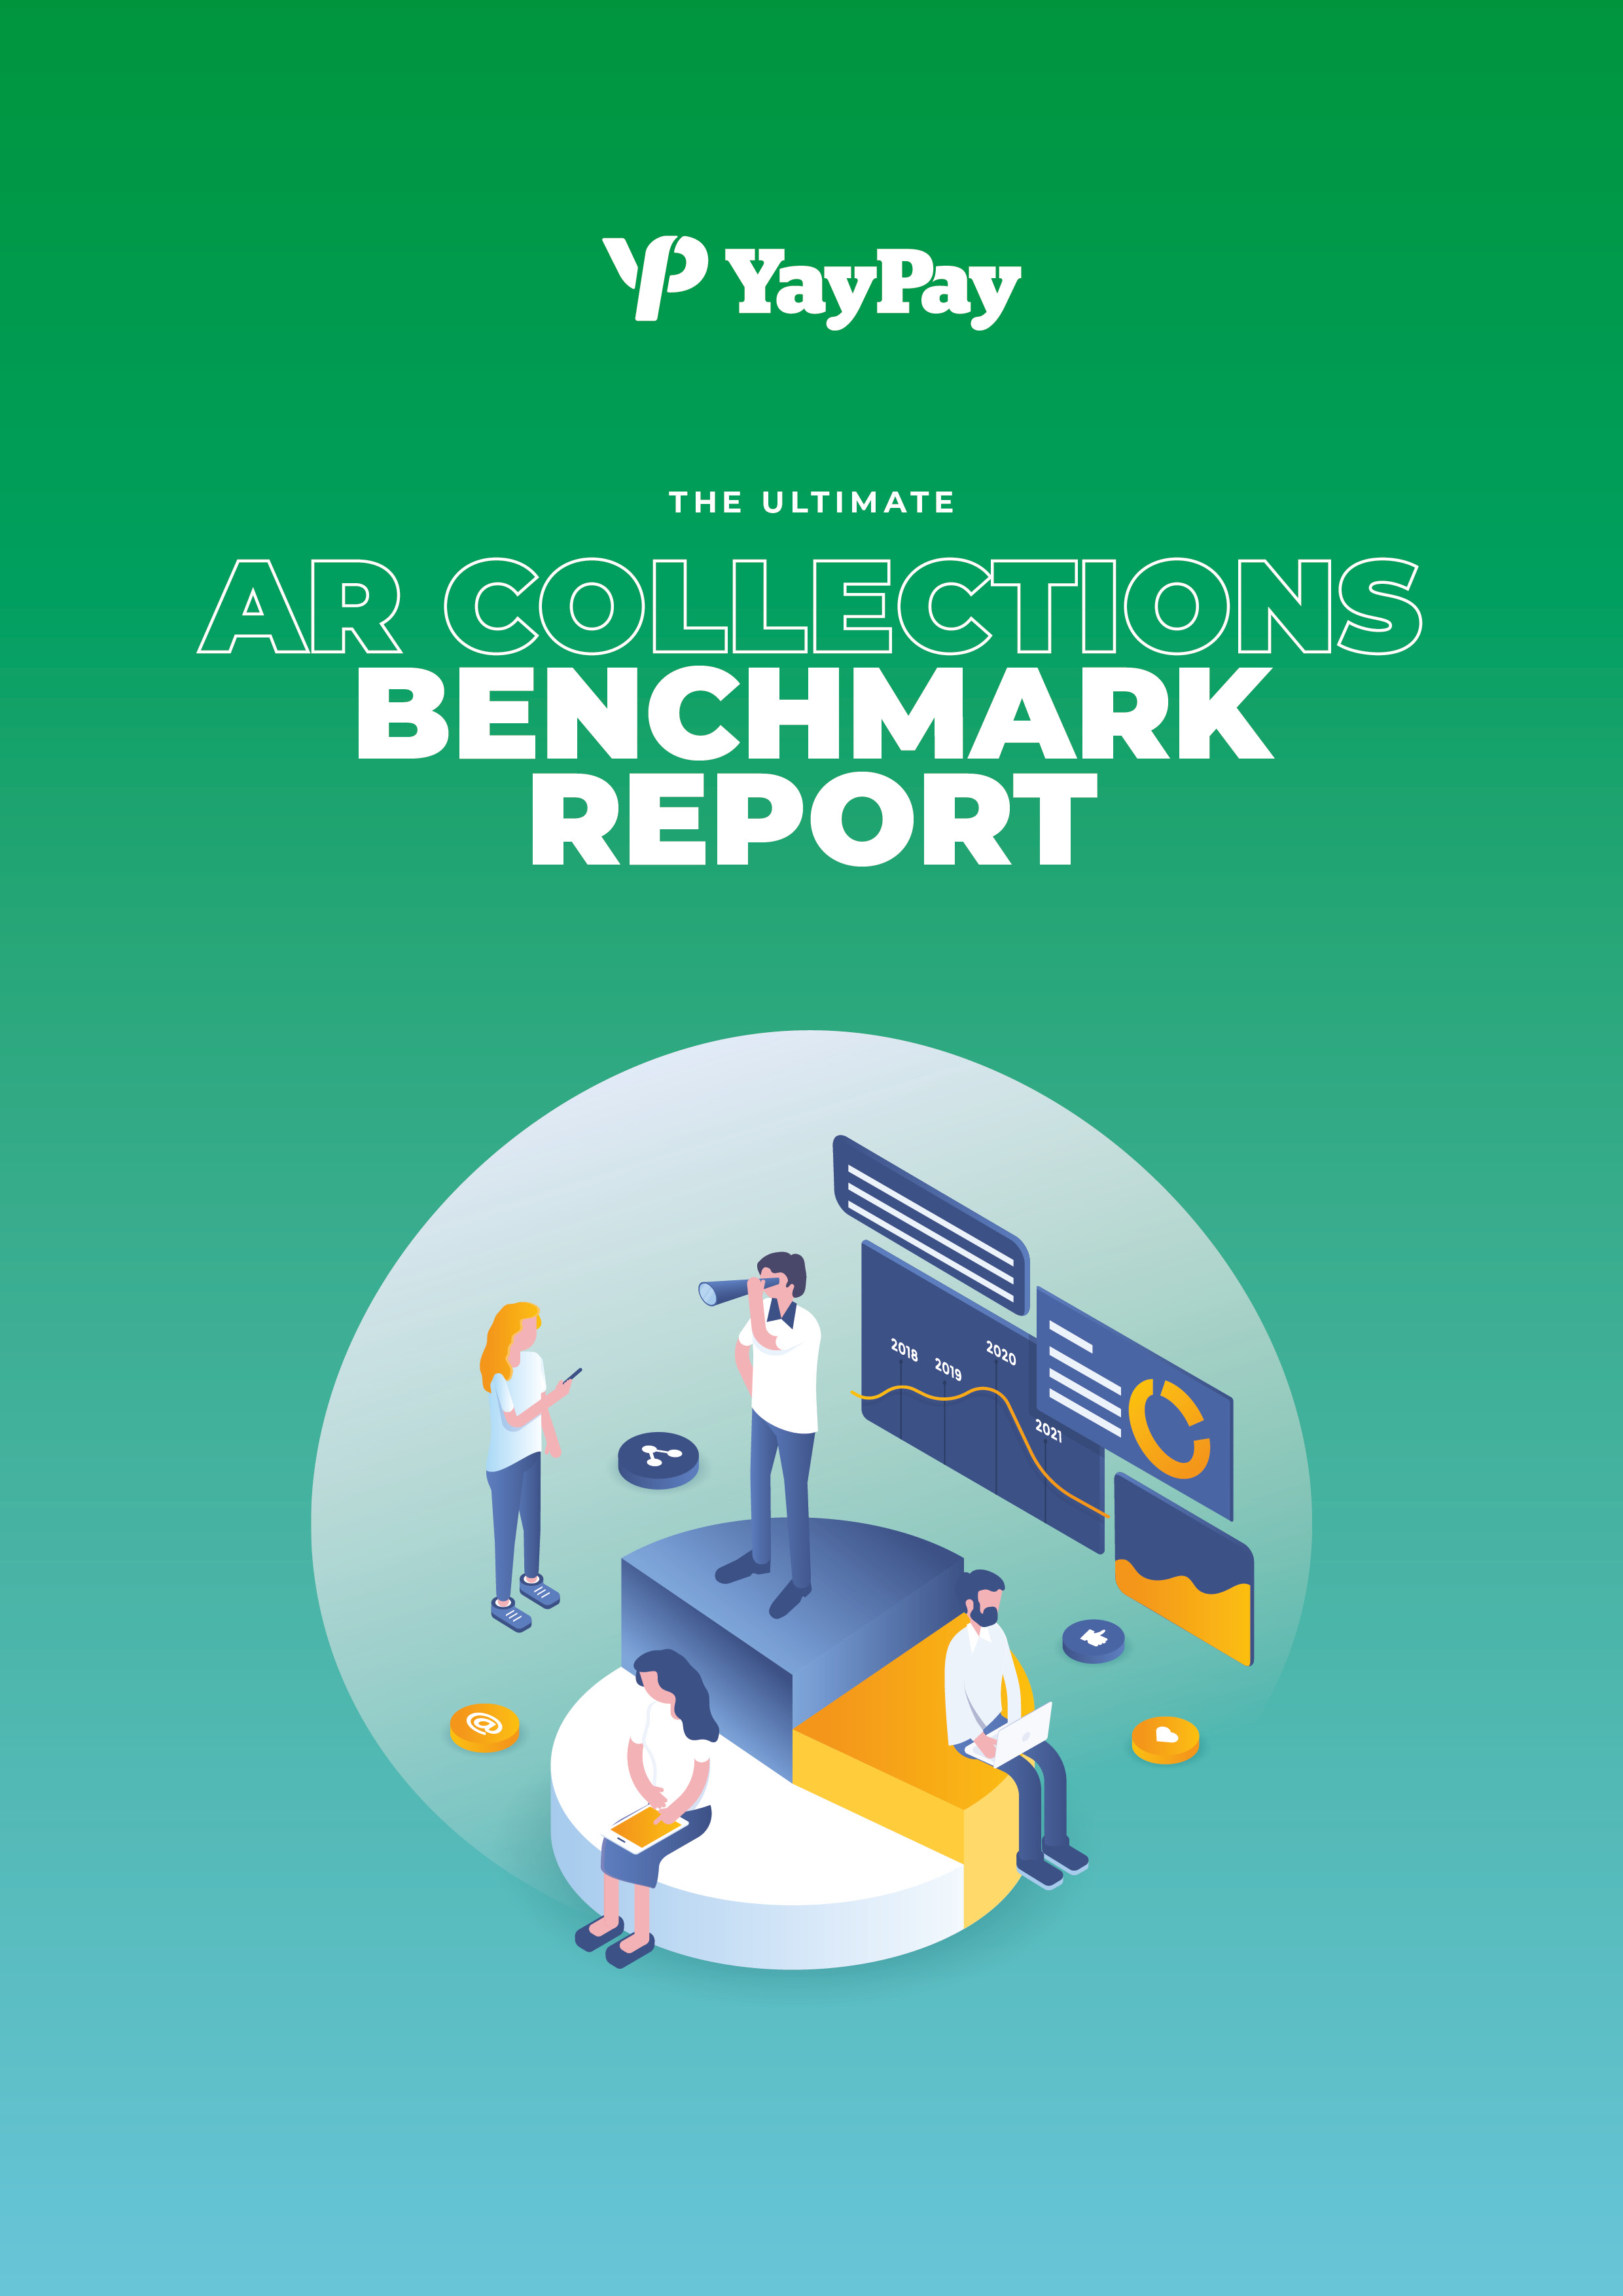 The Ultimate AR Collections Benchmarks Report